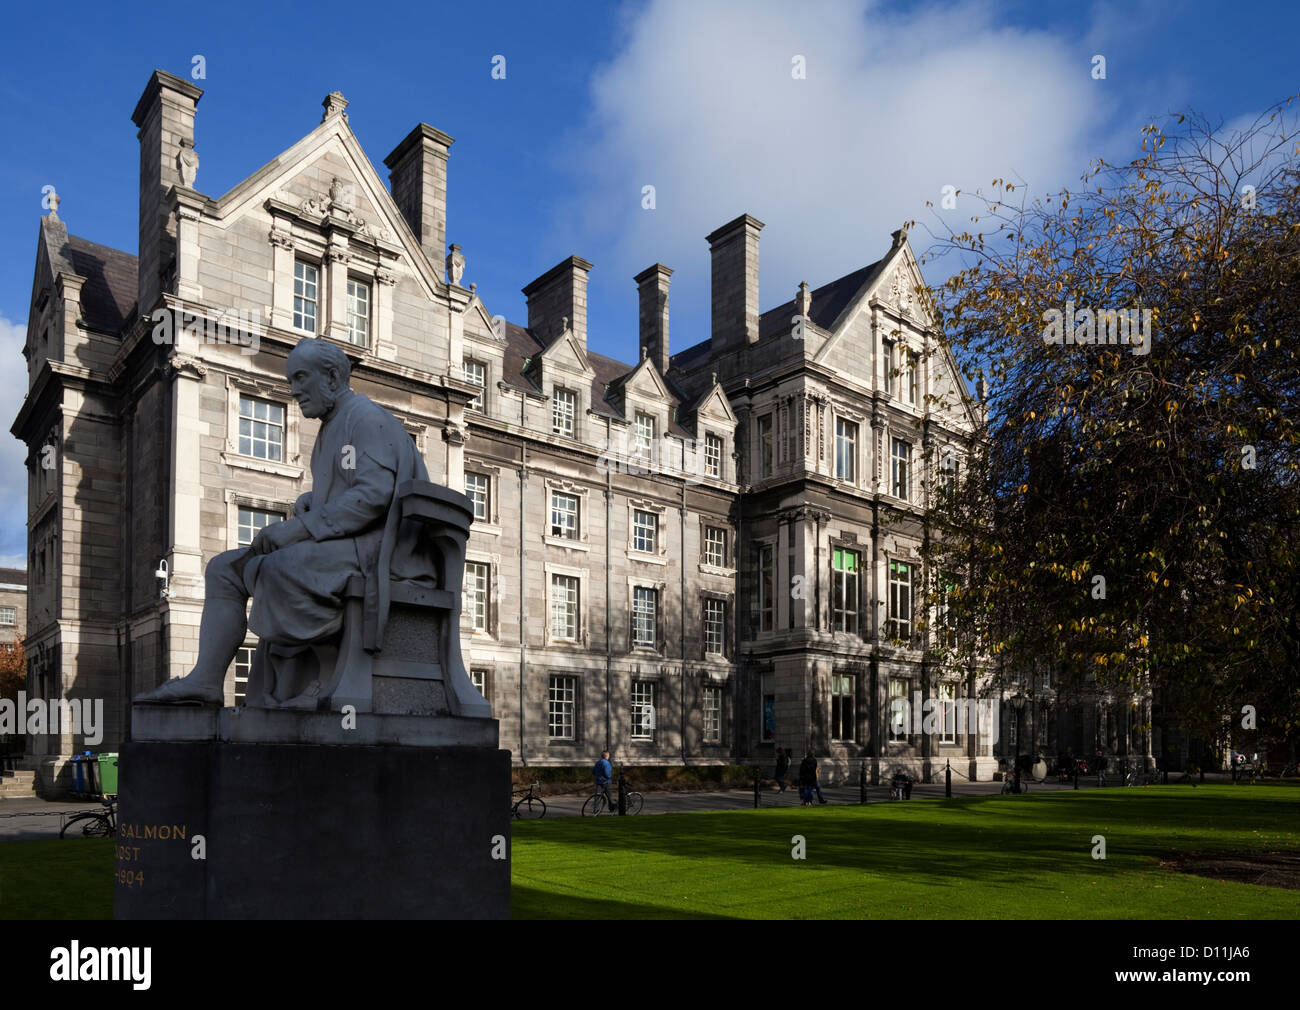 Statue of George Salmon, Provost  from 1888 until 1904, Library Square, Trinity College, University, Dublin, Ireland - Stock Image